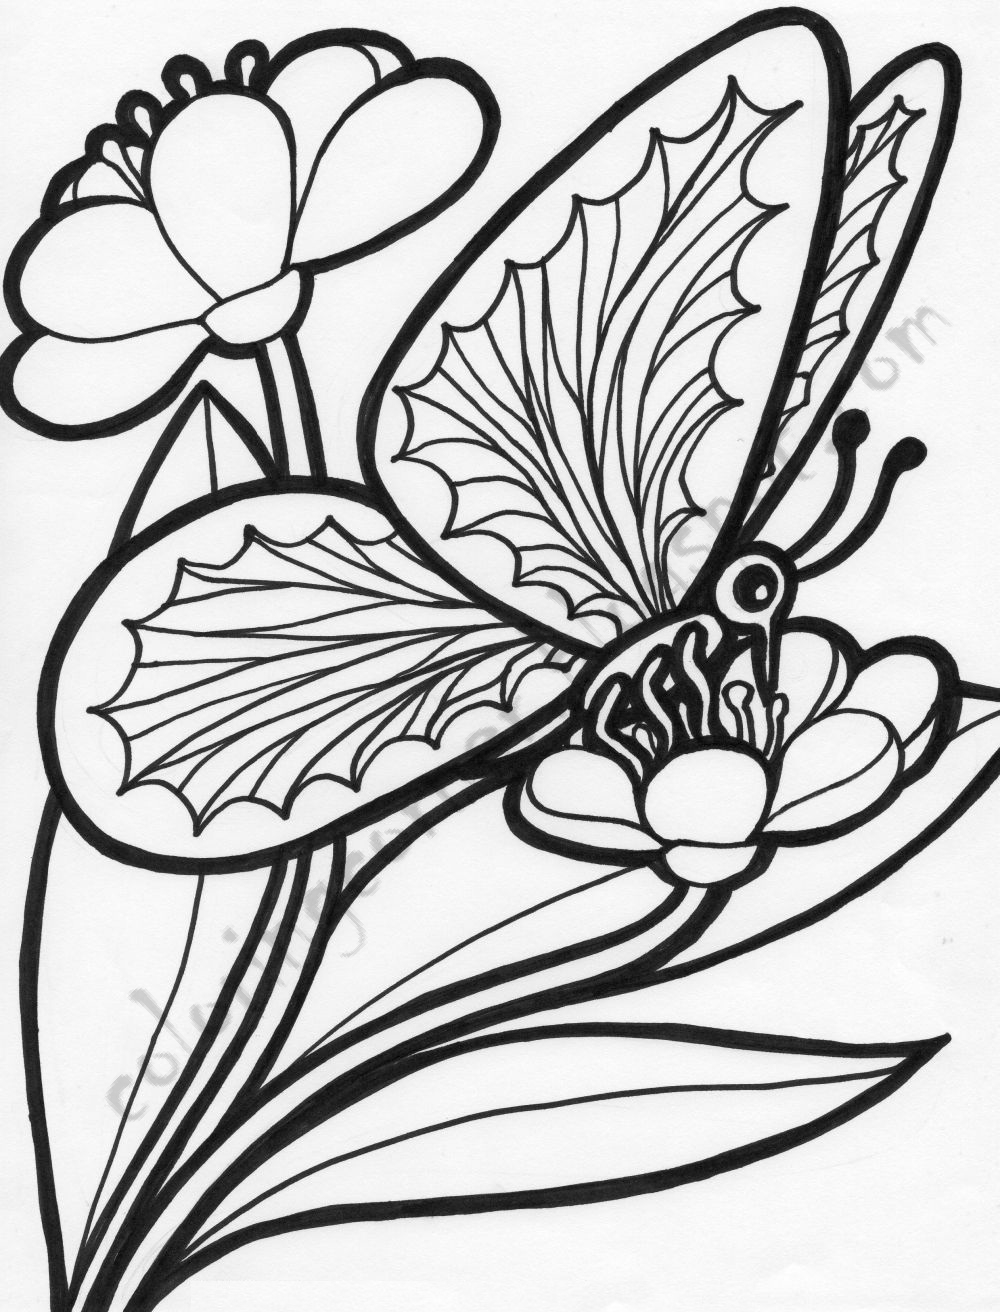 butterfly printable realistic butterfly drawing coloring page download butterfly printable